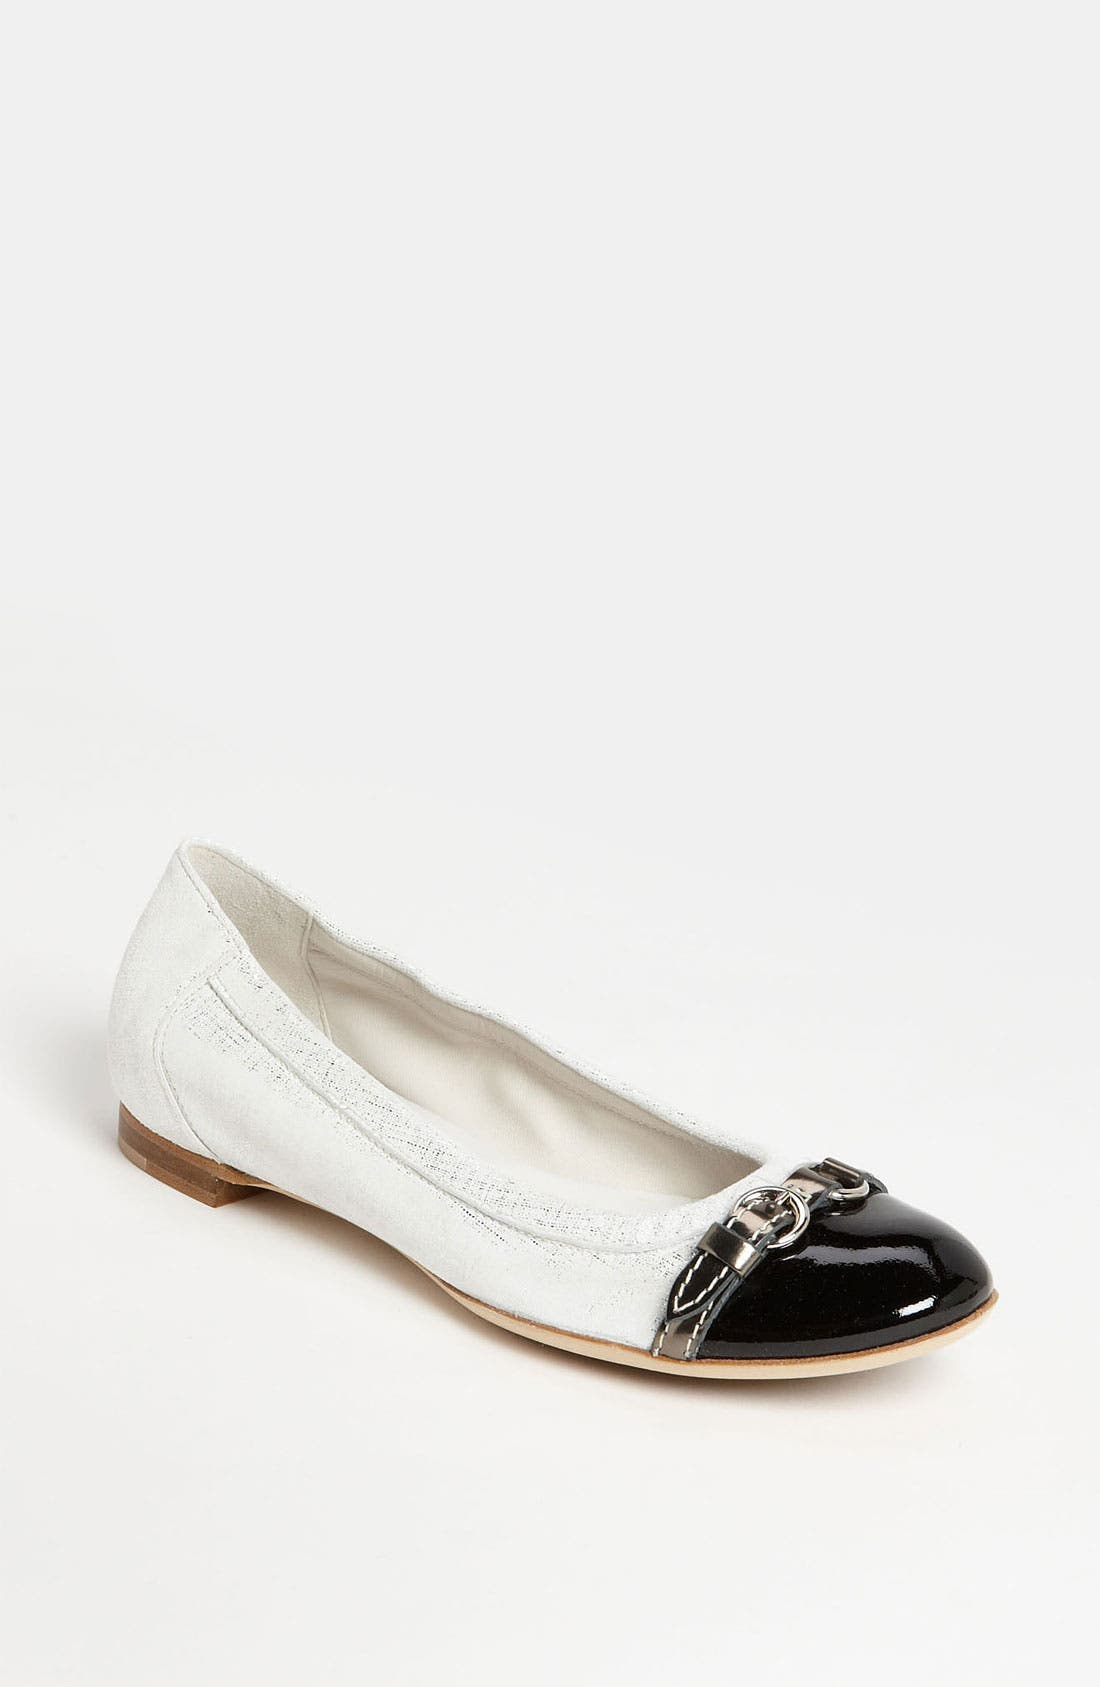 Alternate Image 1 Selected - Attilio Giusti Leombruni Toe Cap Ballet Flat